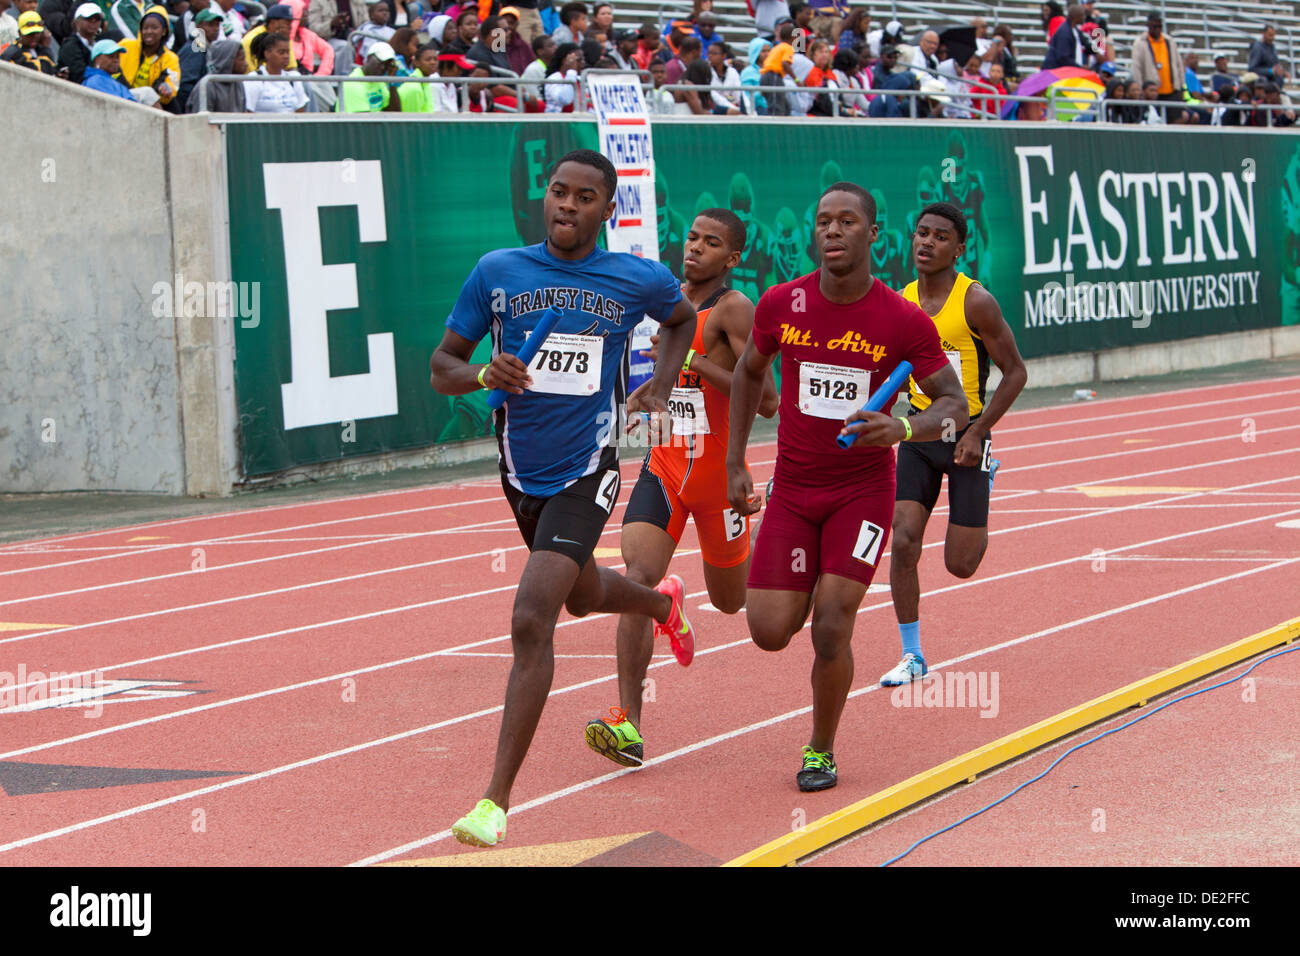 Ypsilanti, Michigan - Relay race competition during the track and field events at the AAU Junior Olympic Games. - Stock Image